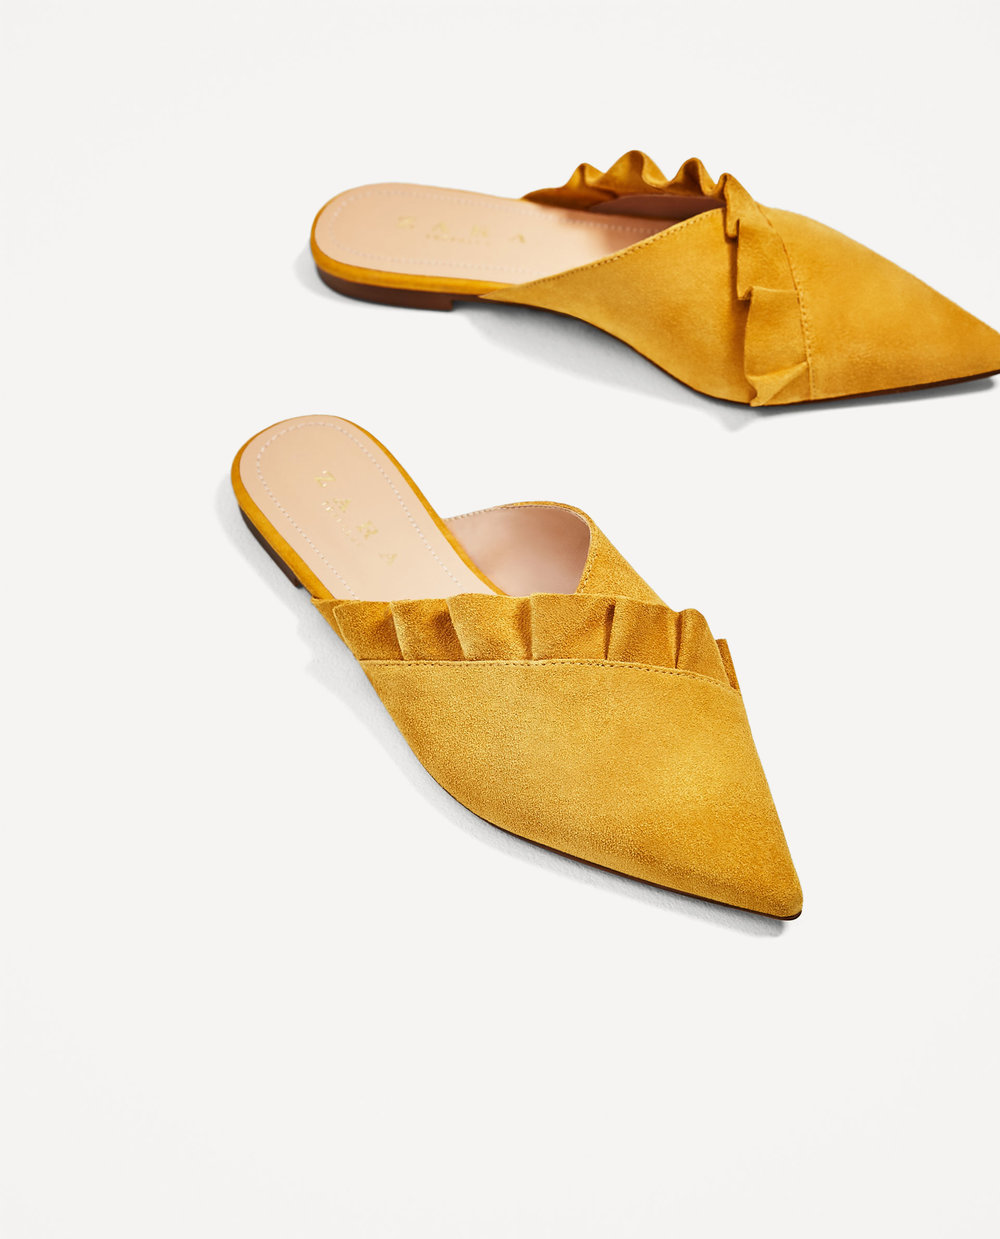 STATEMENT SHOES - LEATHER MULES